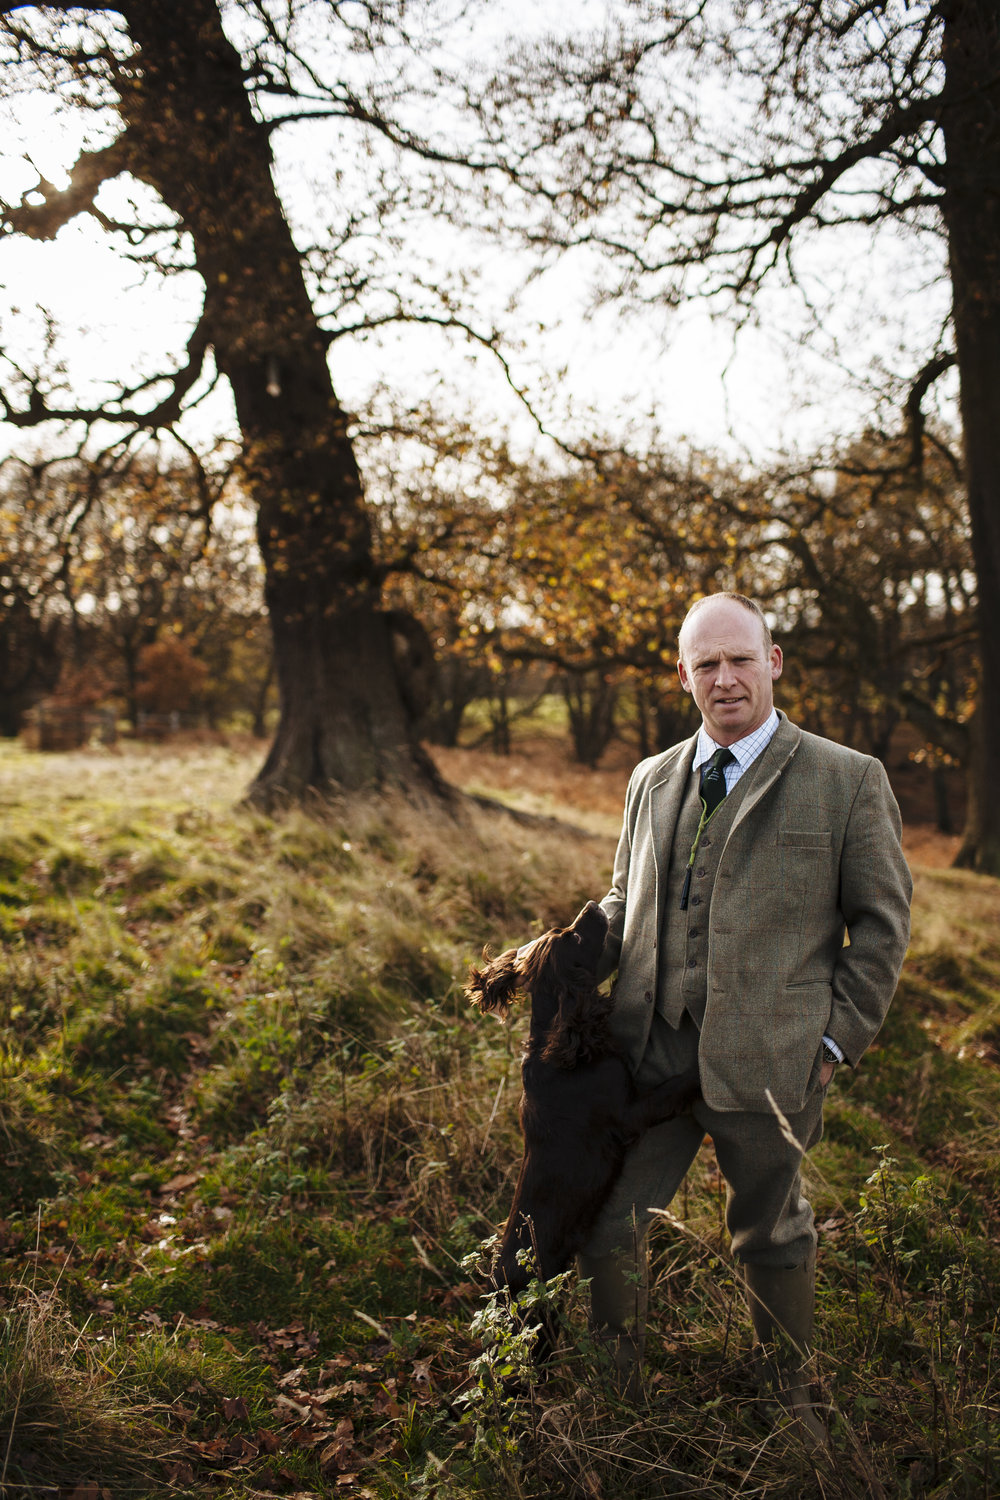 Gamekeeper David Wiggins poses for a photograph with one of his dogs in Berkshire, England, Friday, Nov. 21, 2008. (David Azia for The New York Times)